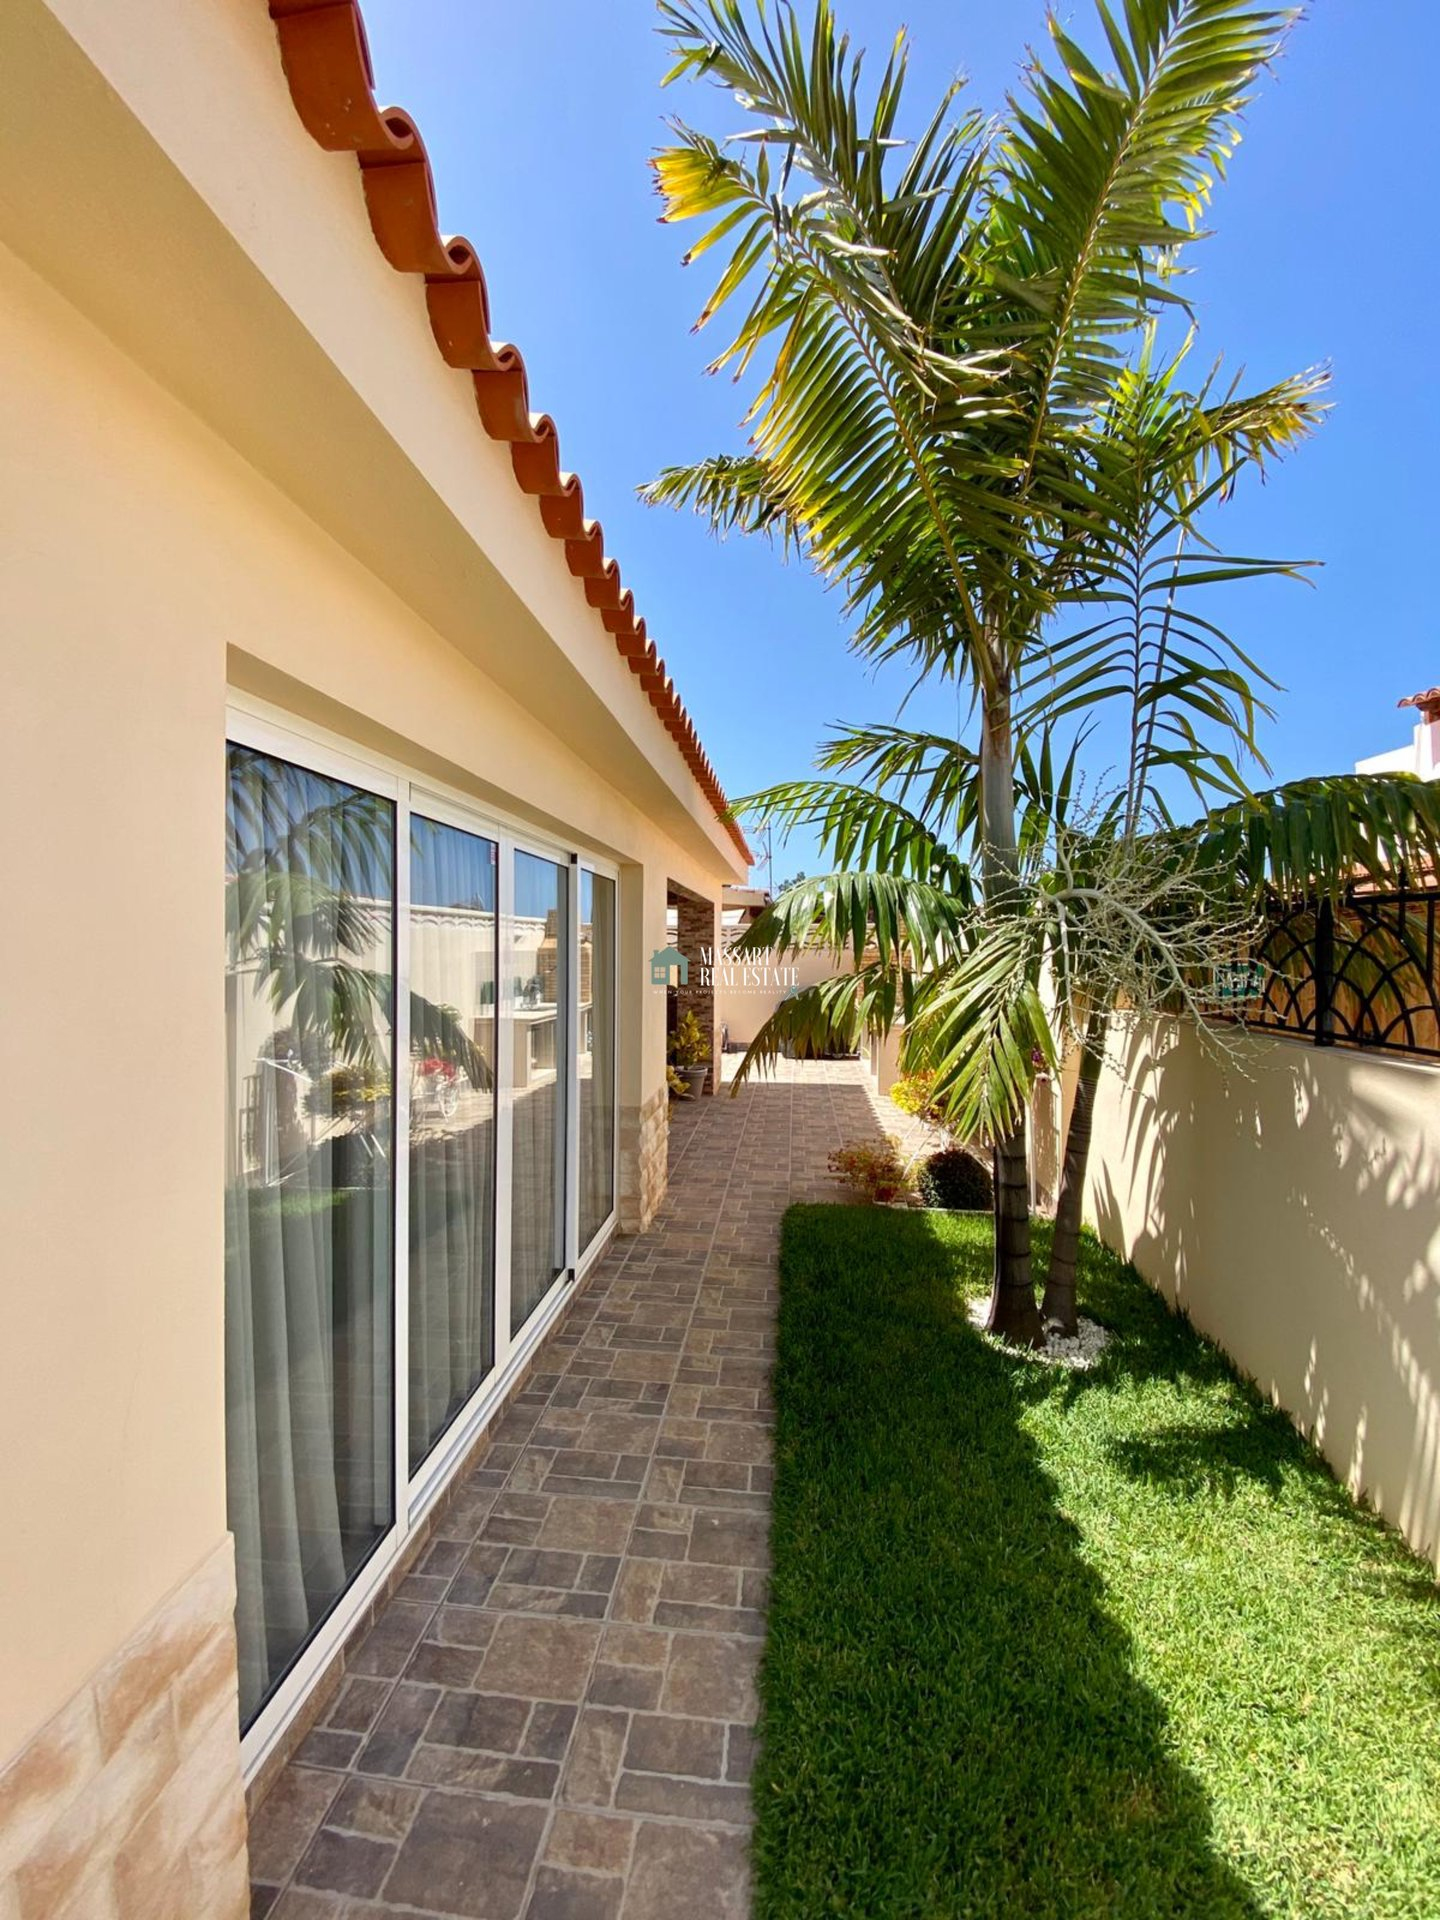 Exclusive villa of 120 m2 furnished with modern style in an area of absolute tranquility, Palm-Mar (Arona).